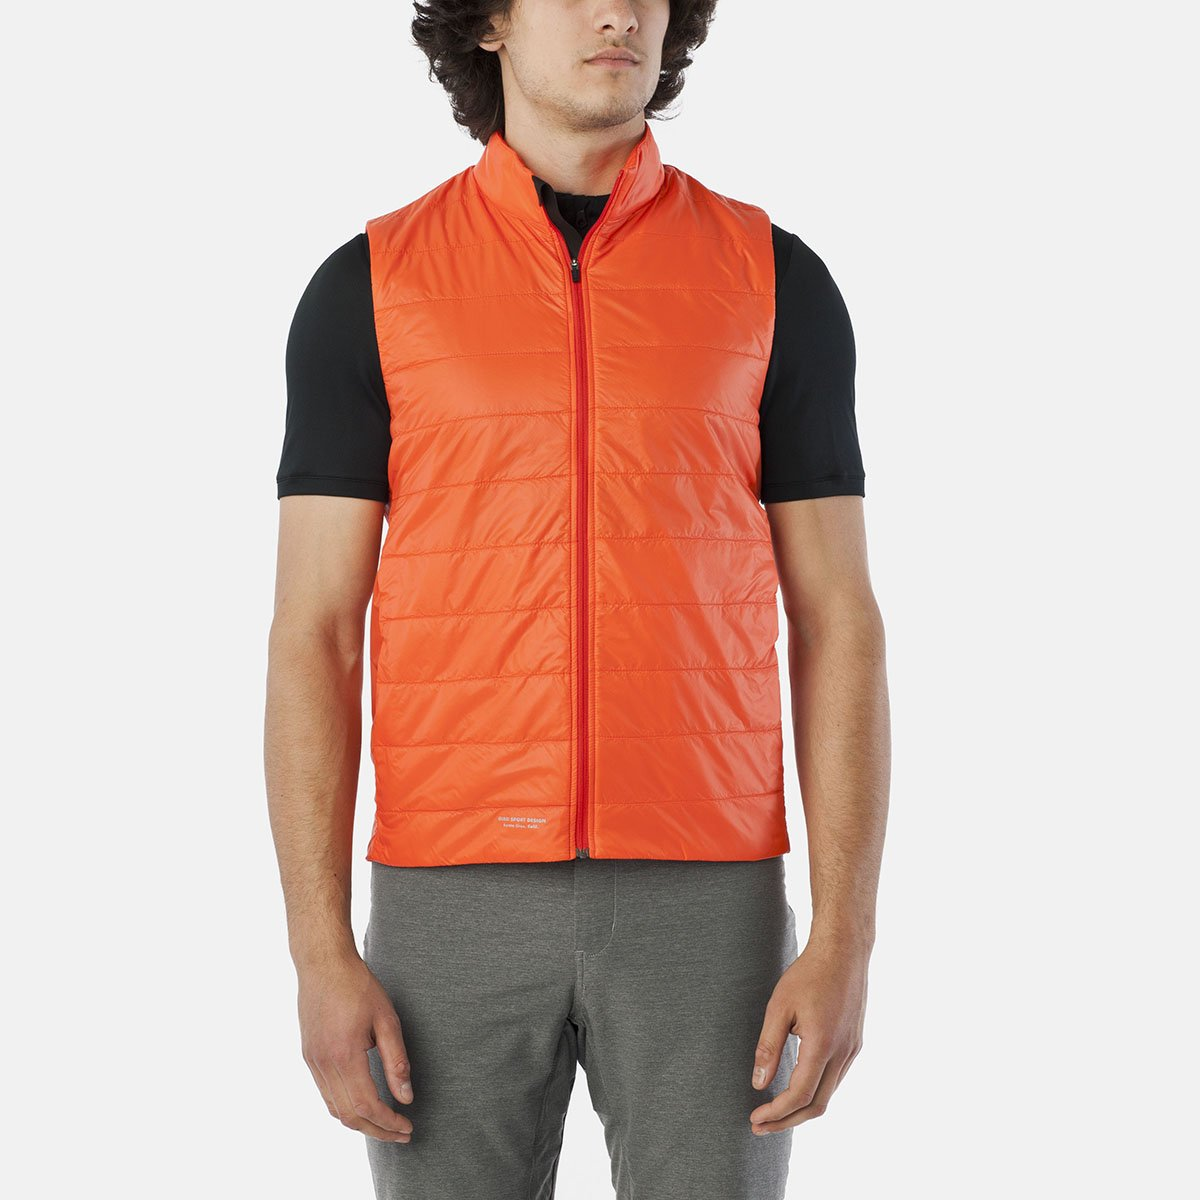 Giro Weste Insulated Herren Glowing ROT